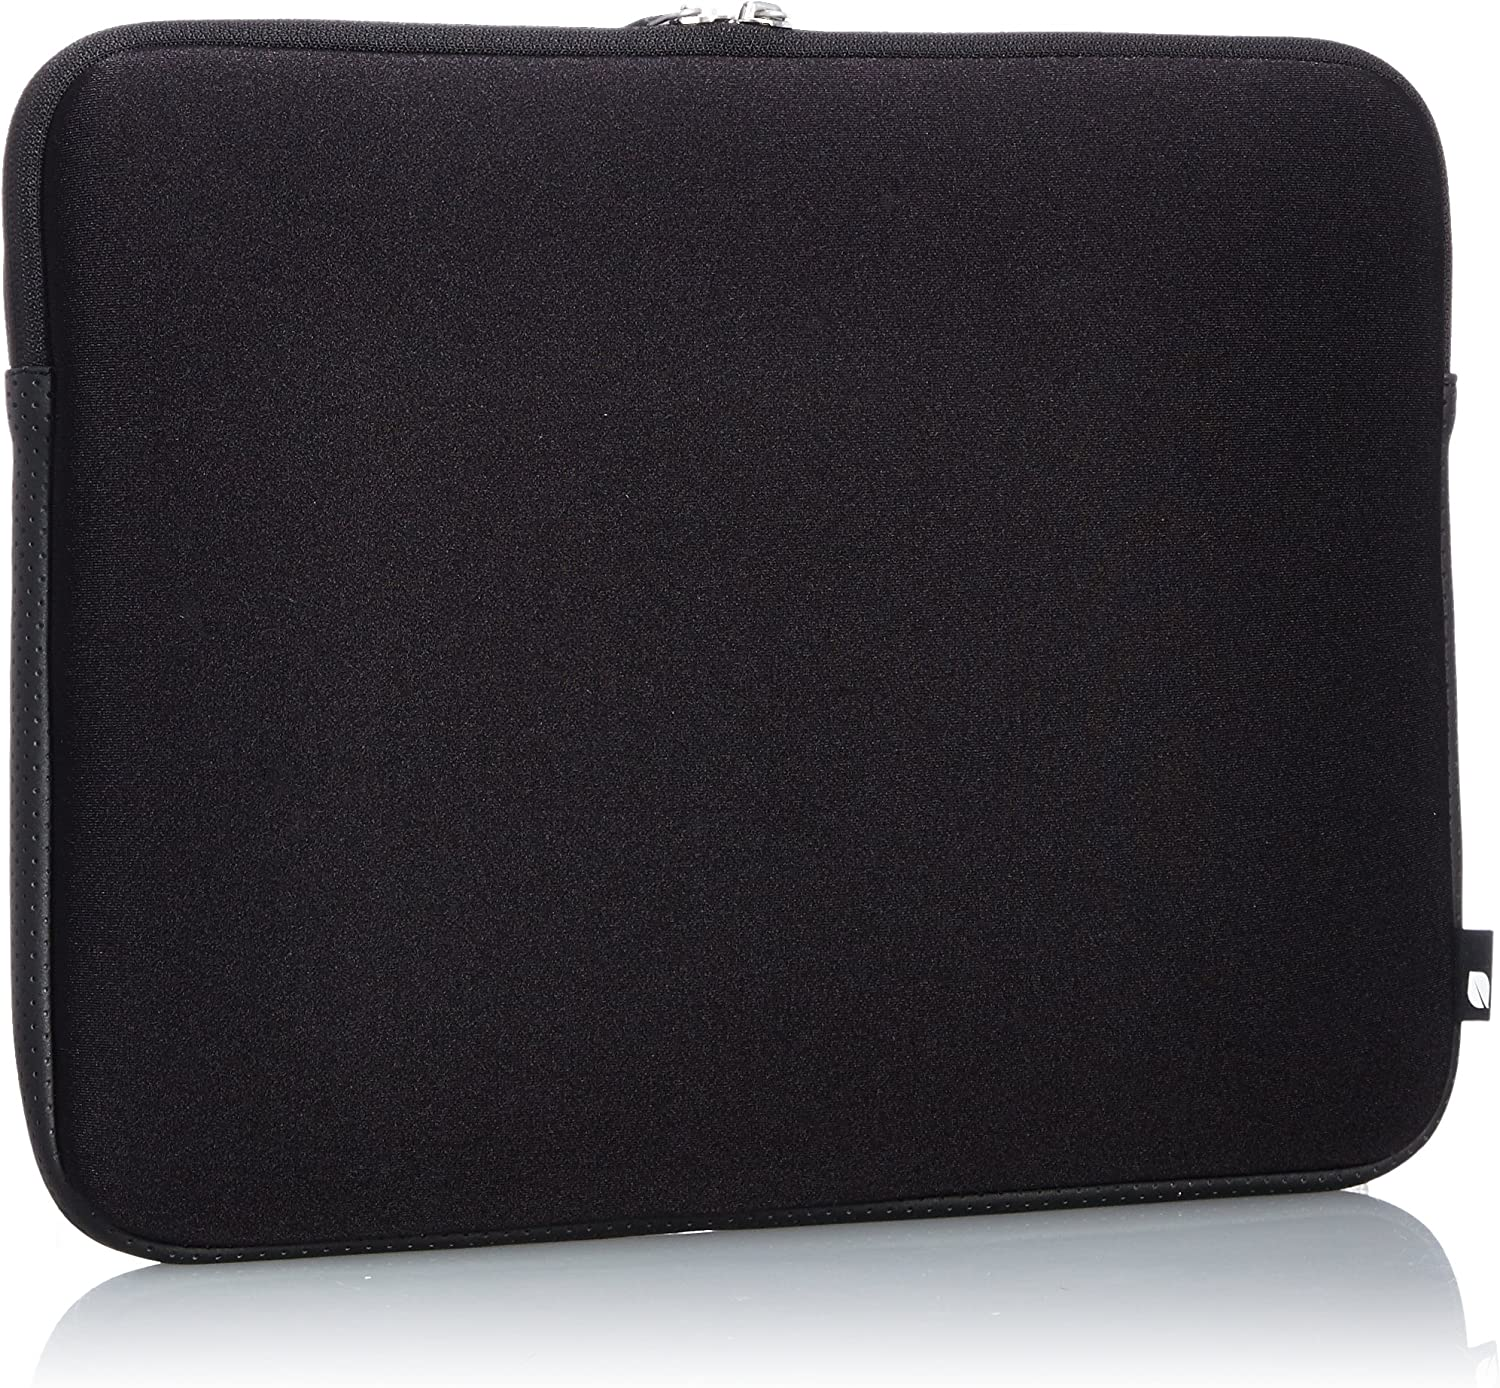 Son-Ic The Hedgehog Neoprene Laptop Sleeve Case Protective Bag Compatible with 13-15 Inch MacBook Pro MacBook Air and Notebook Computer